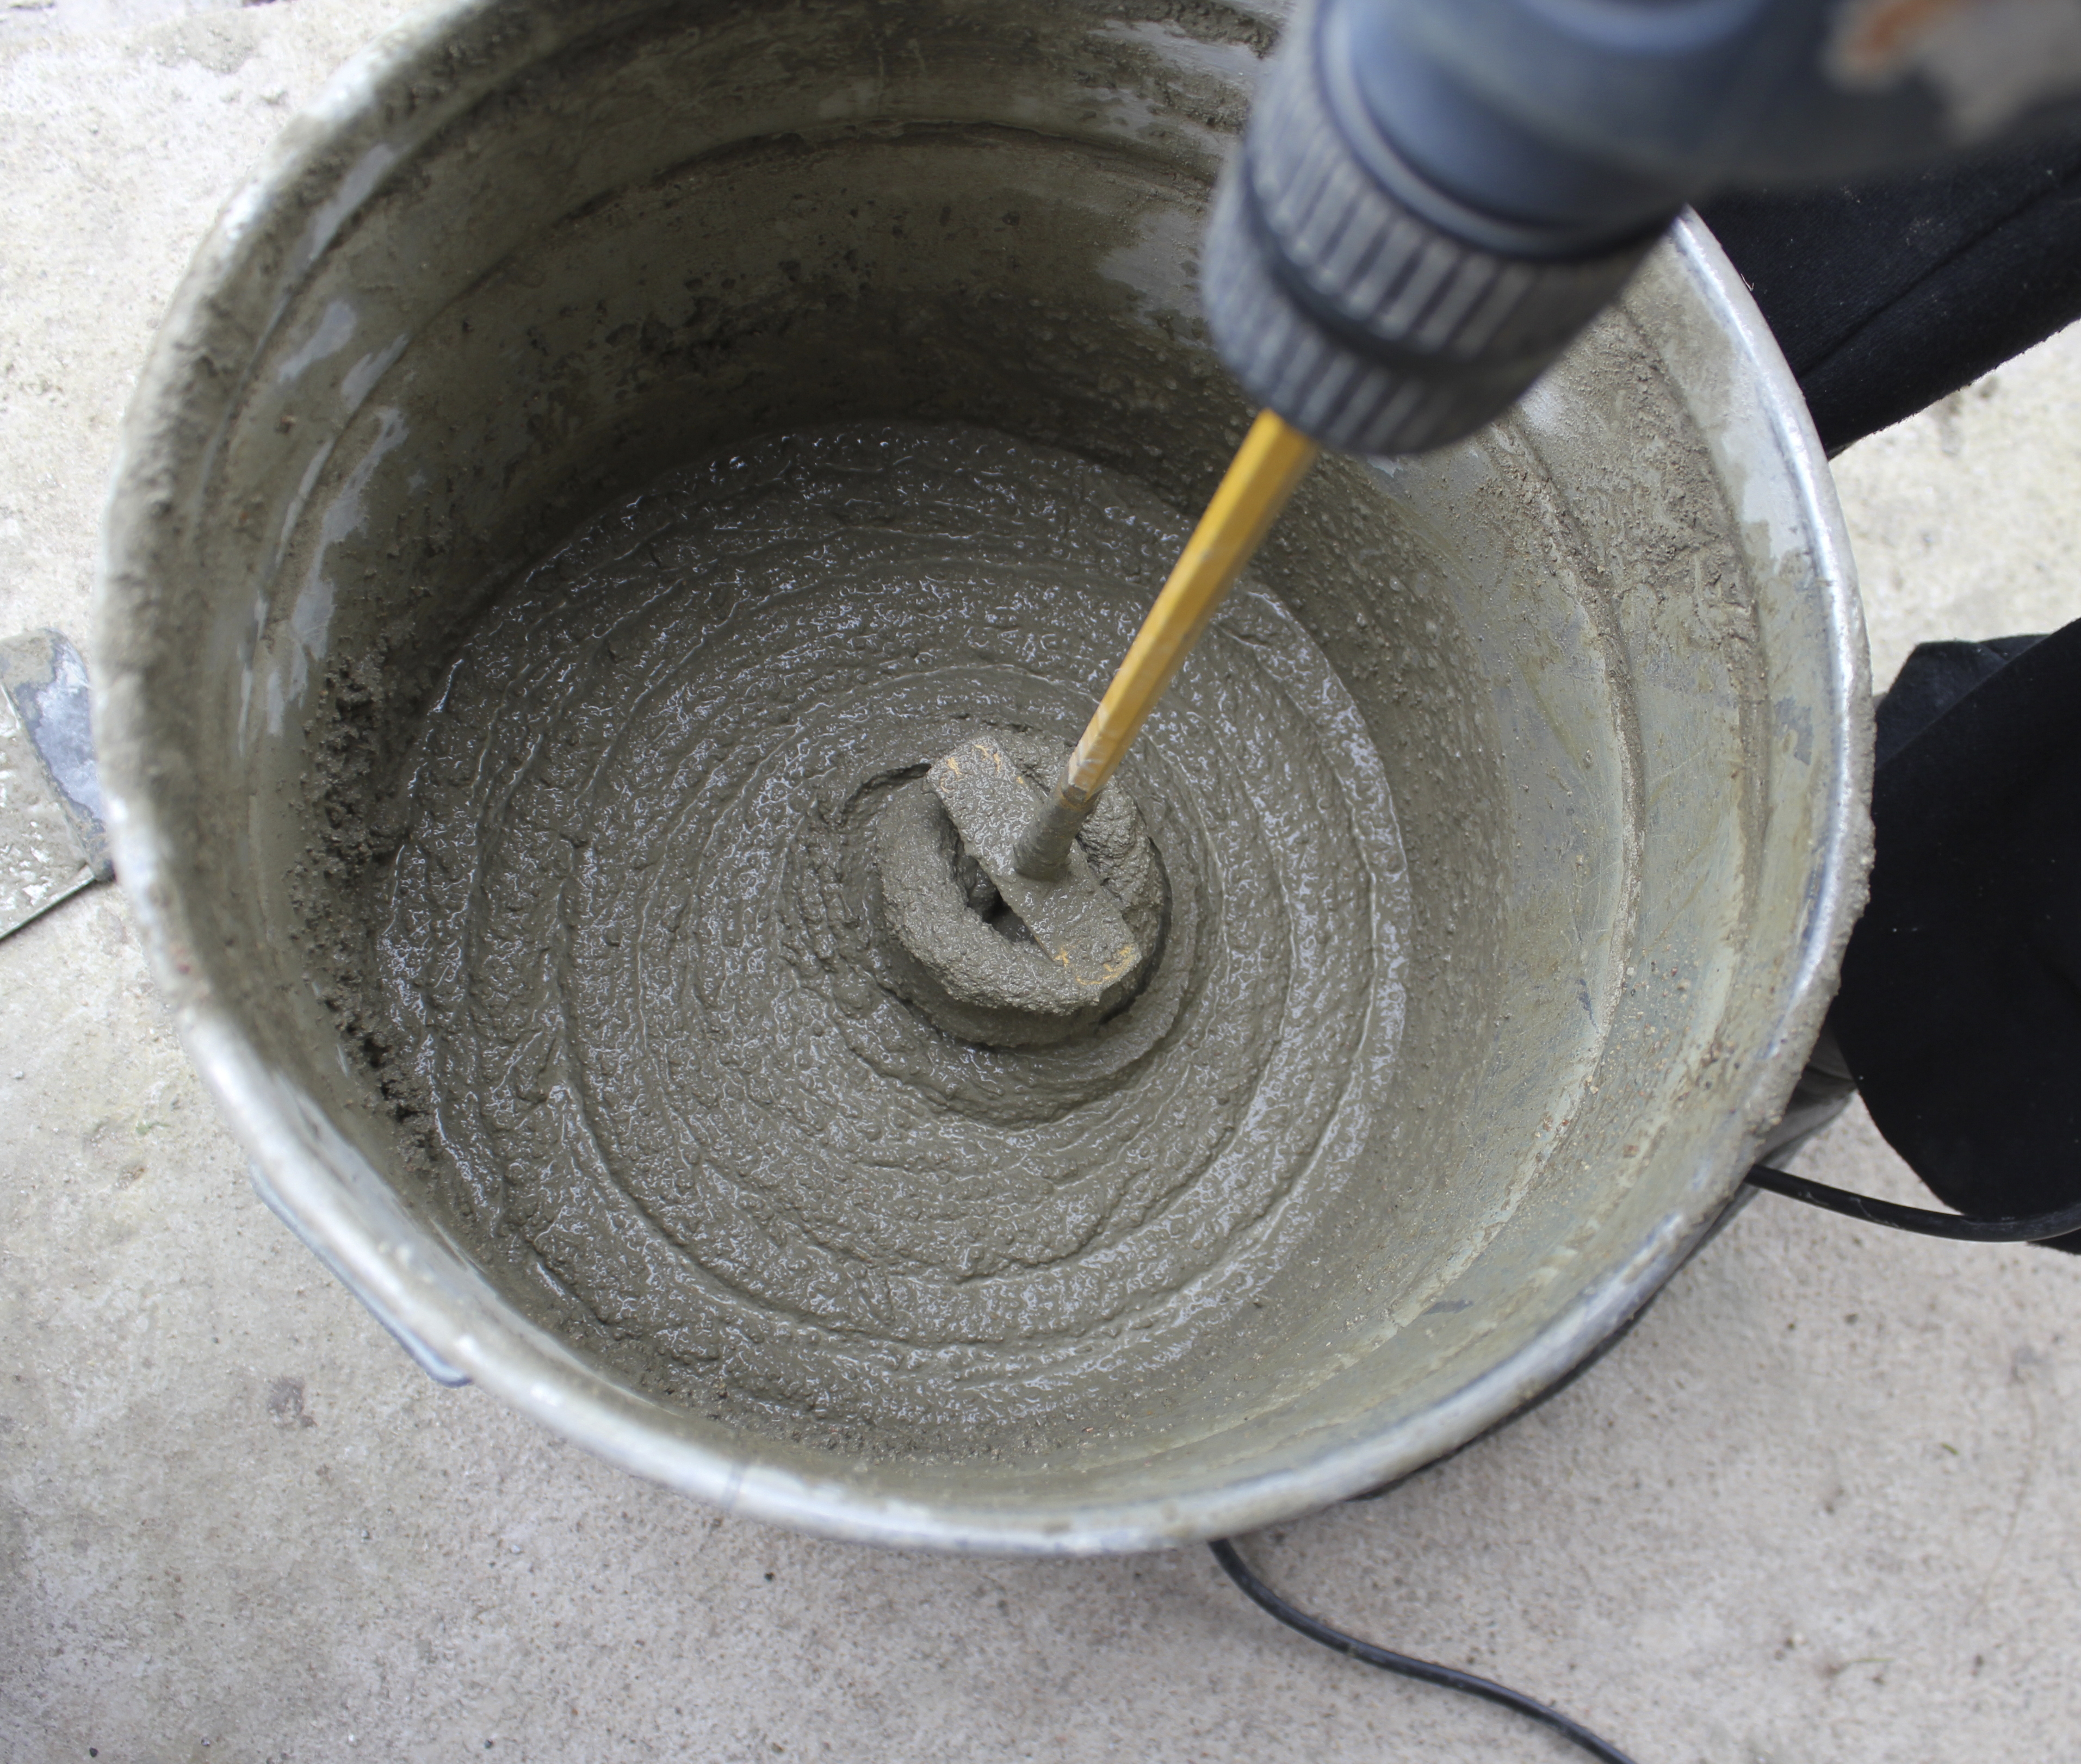 How to Mix Cement Without Sand | Hunker